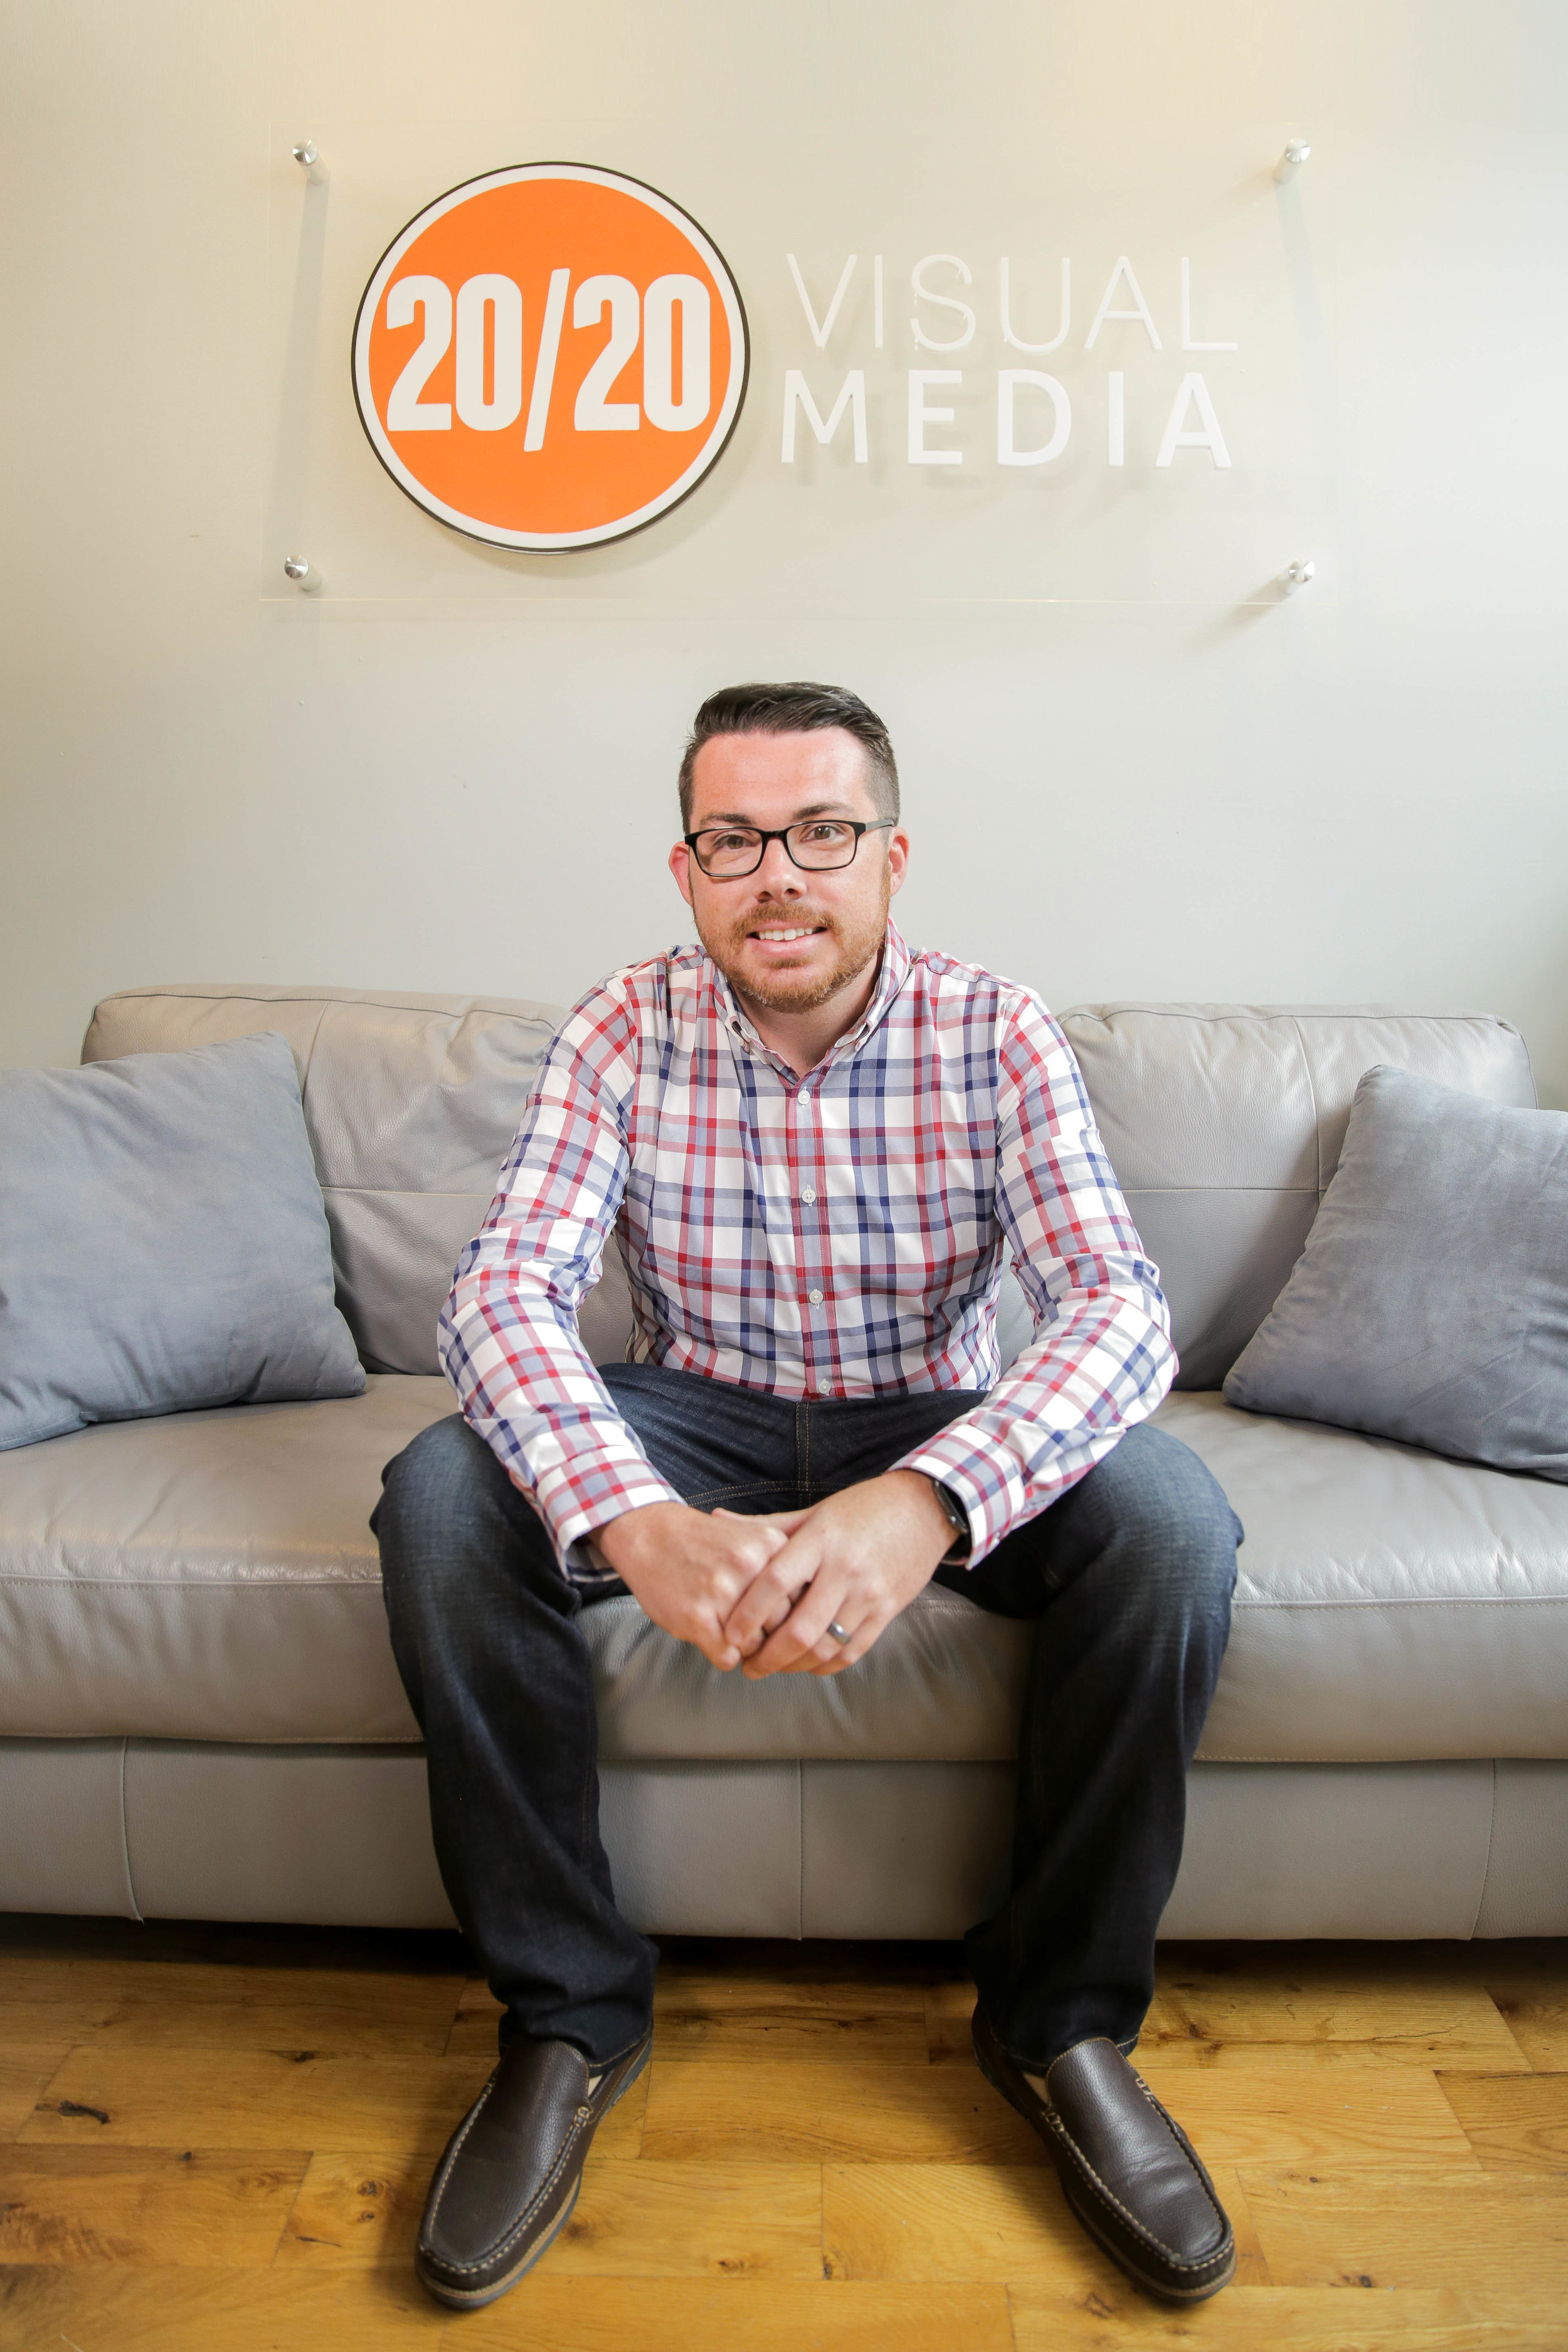 Ed Seiders has joined 20/20 Visual Media as its first Director of Business Development.